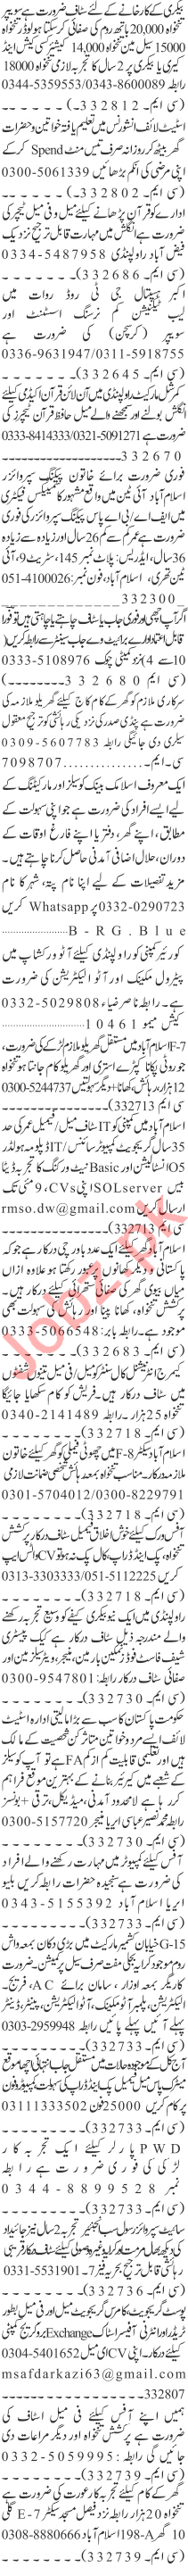 Jang Sunday Classified Ads 2 May 2021 for General Staff